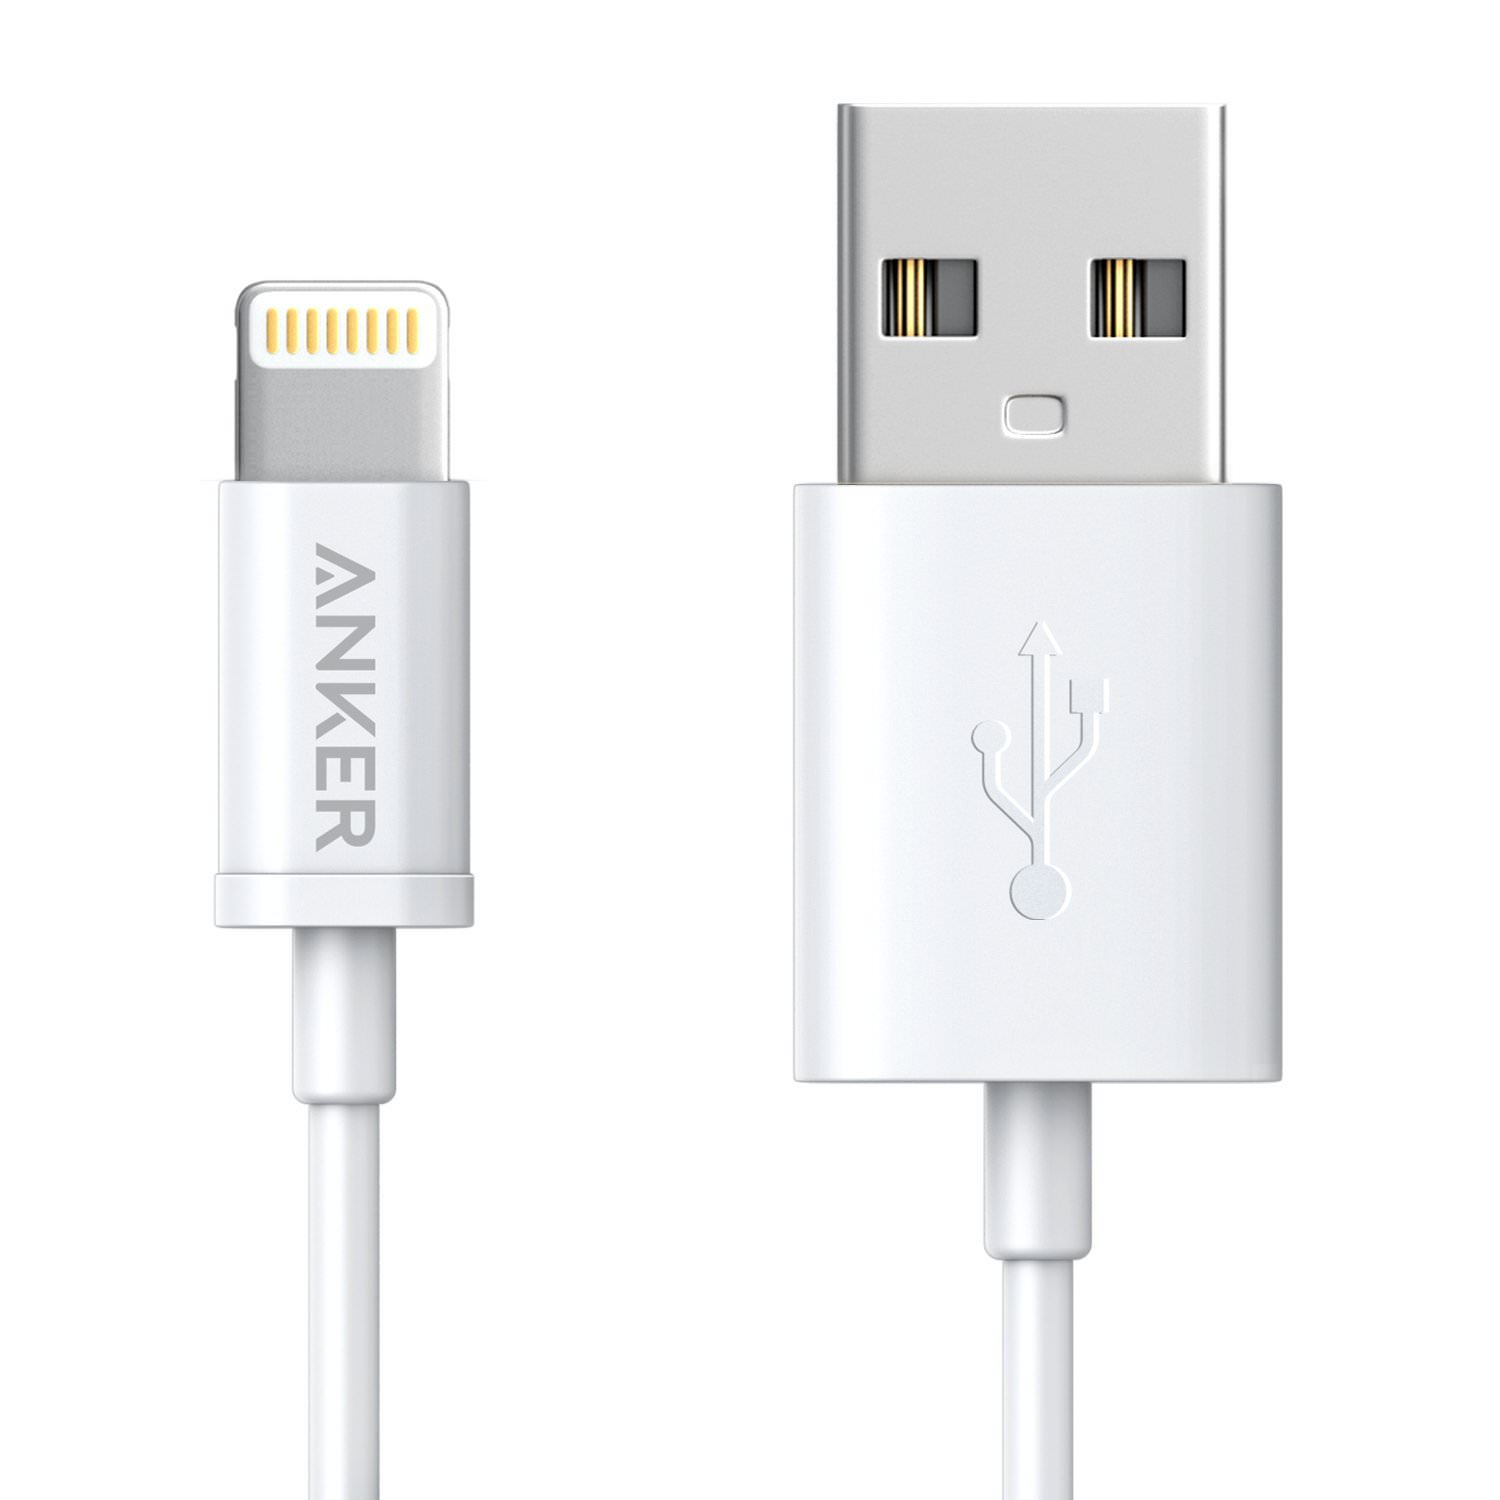 Anker Premium Lightning Cable Sale